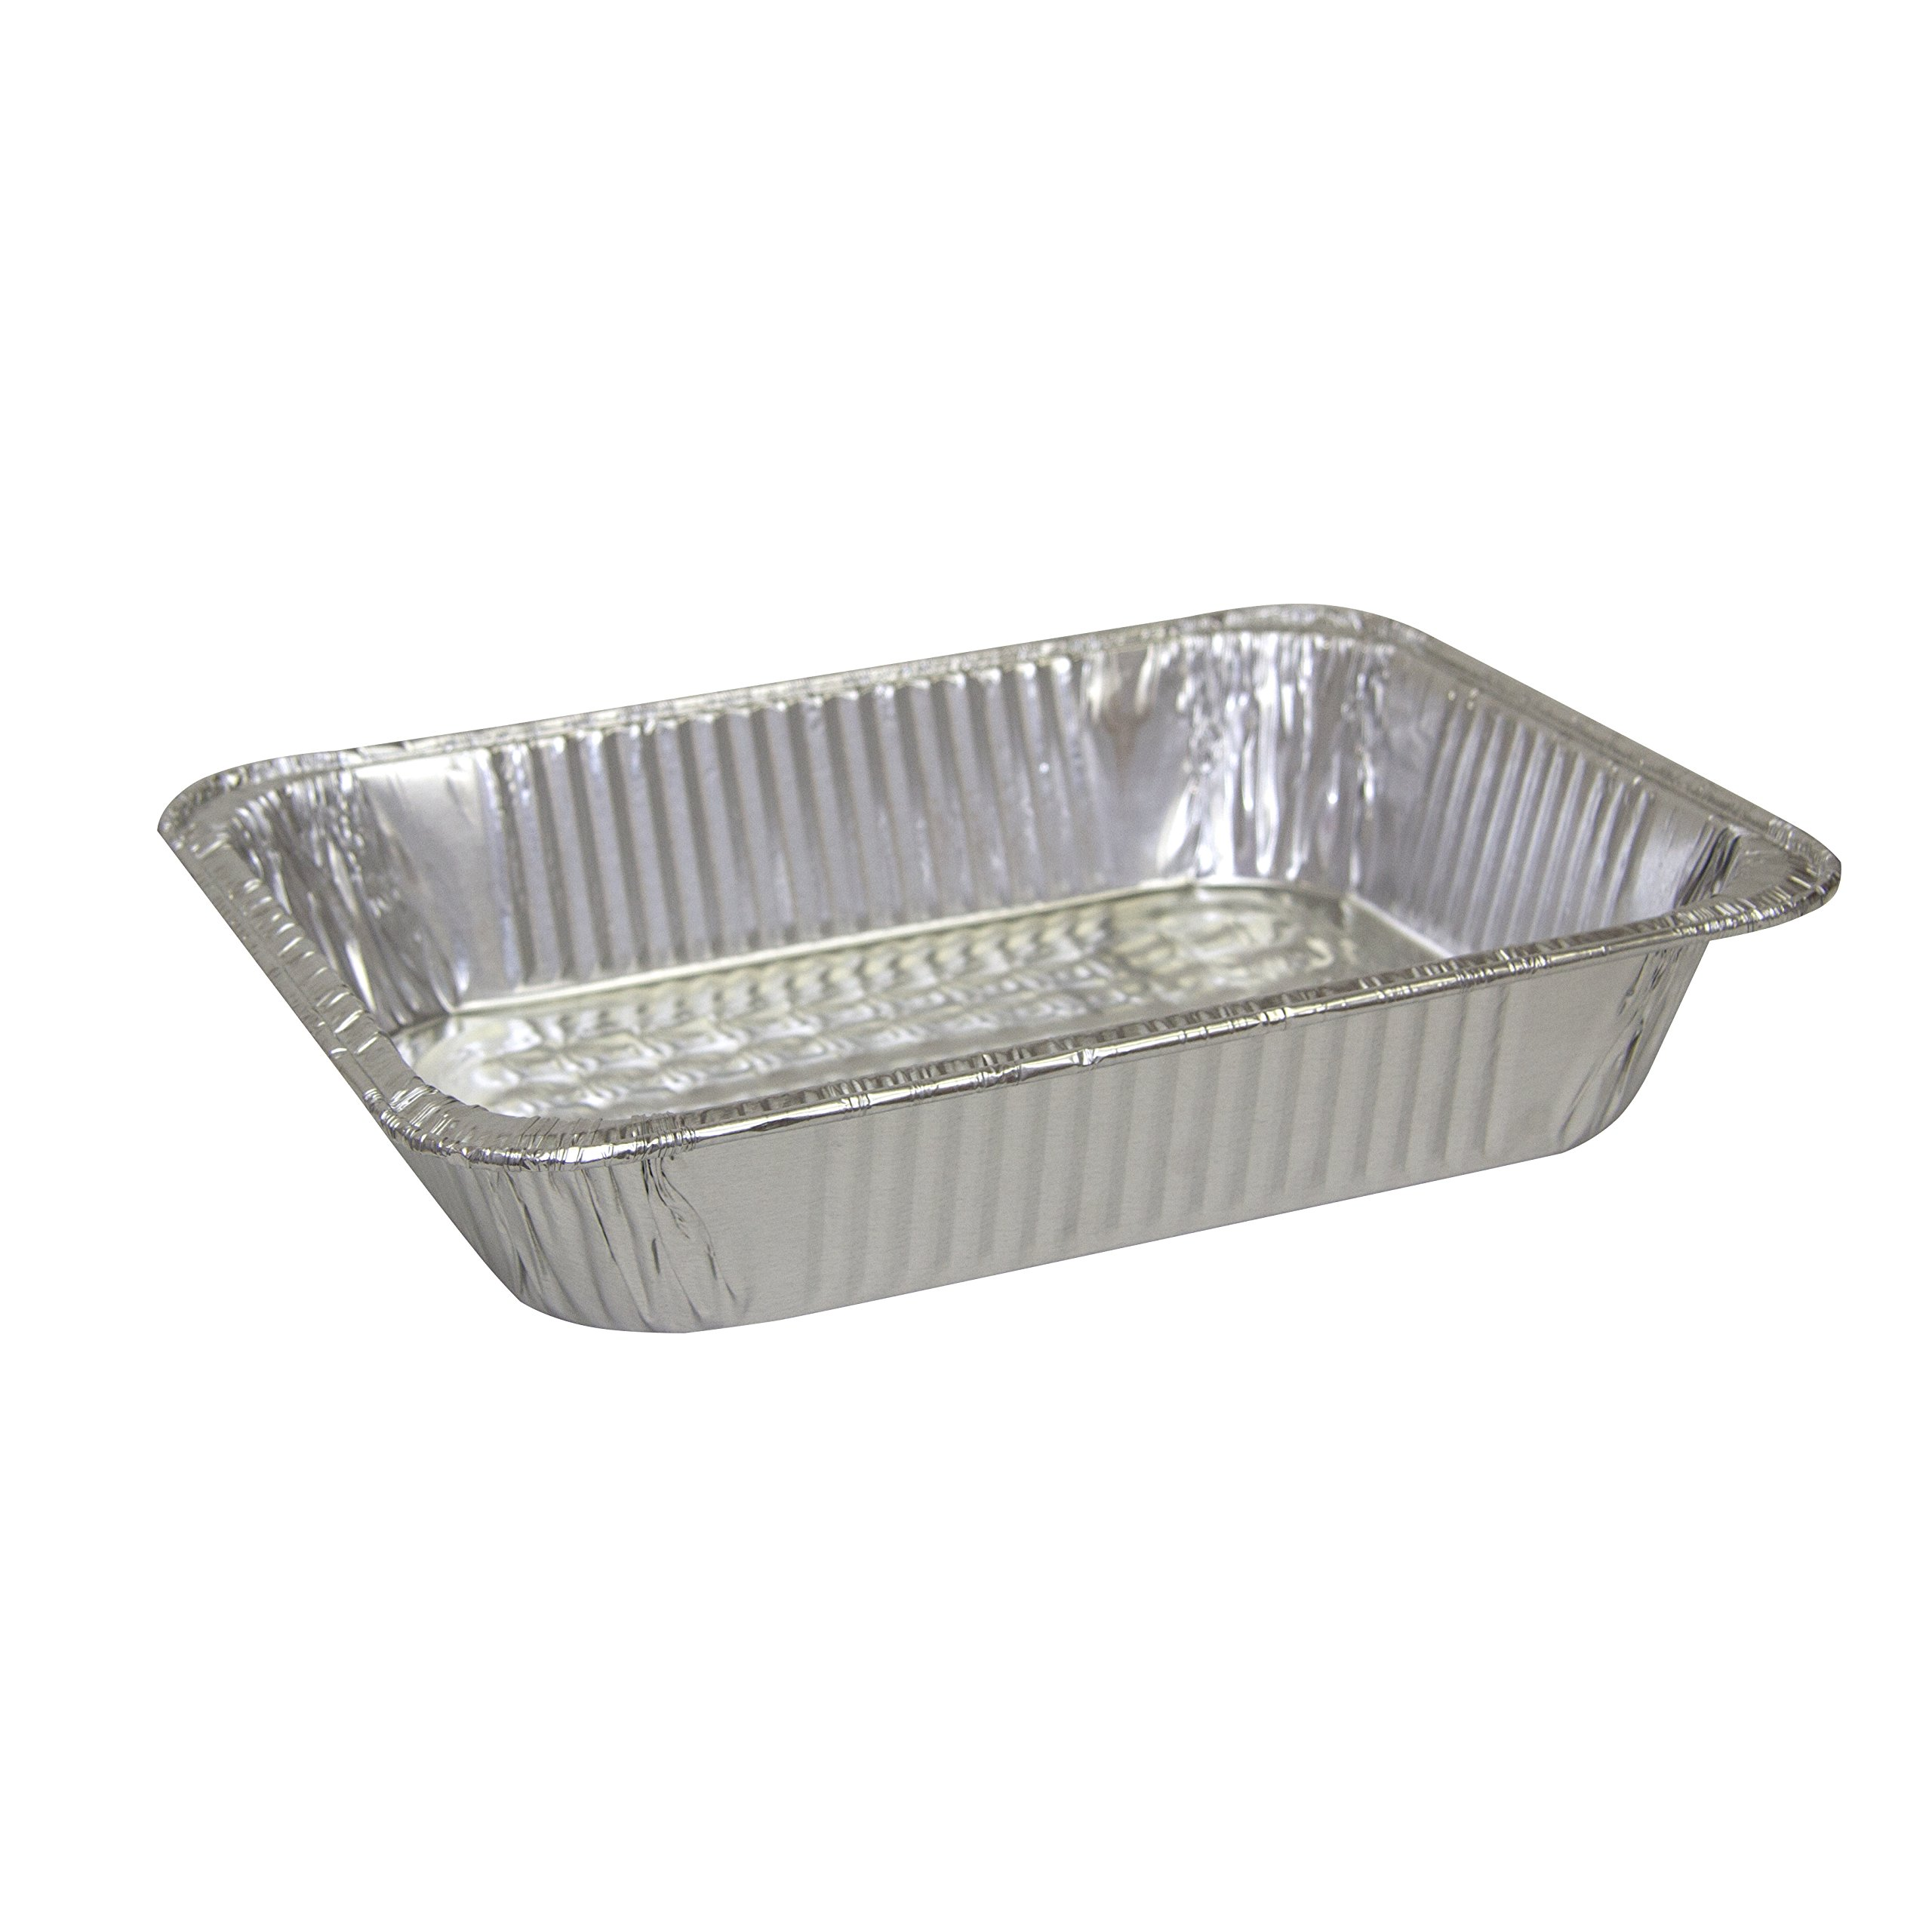 1/2 Size Deep Foil Steam Table Pan